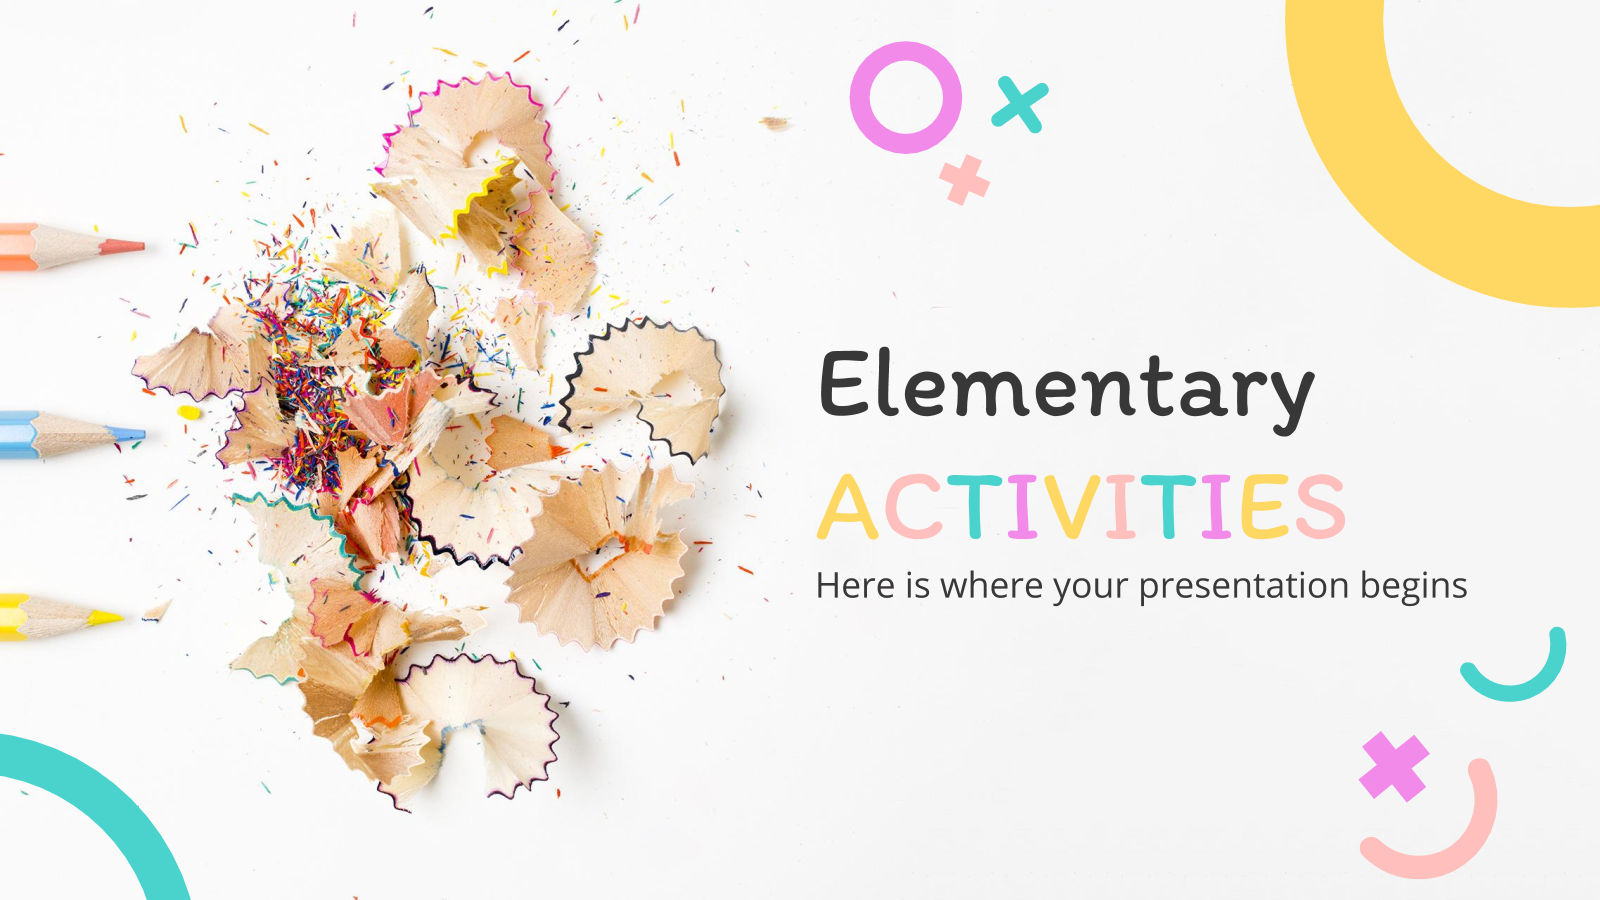 Elementary Activities presentation template